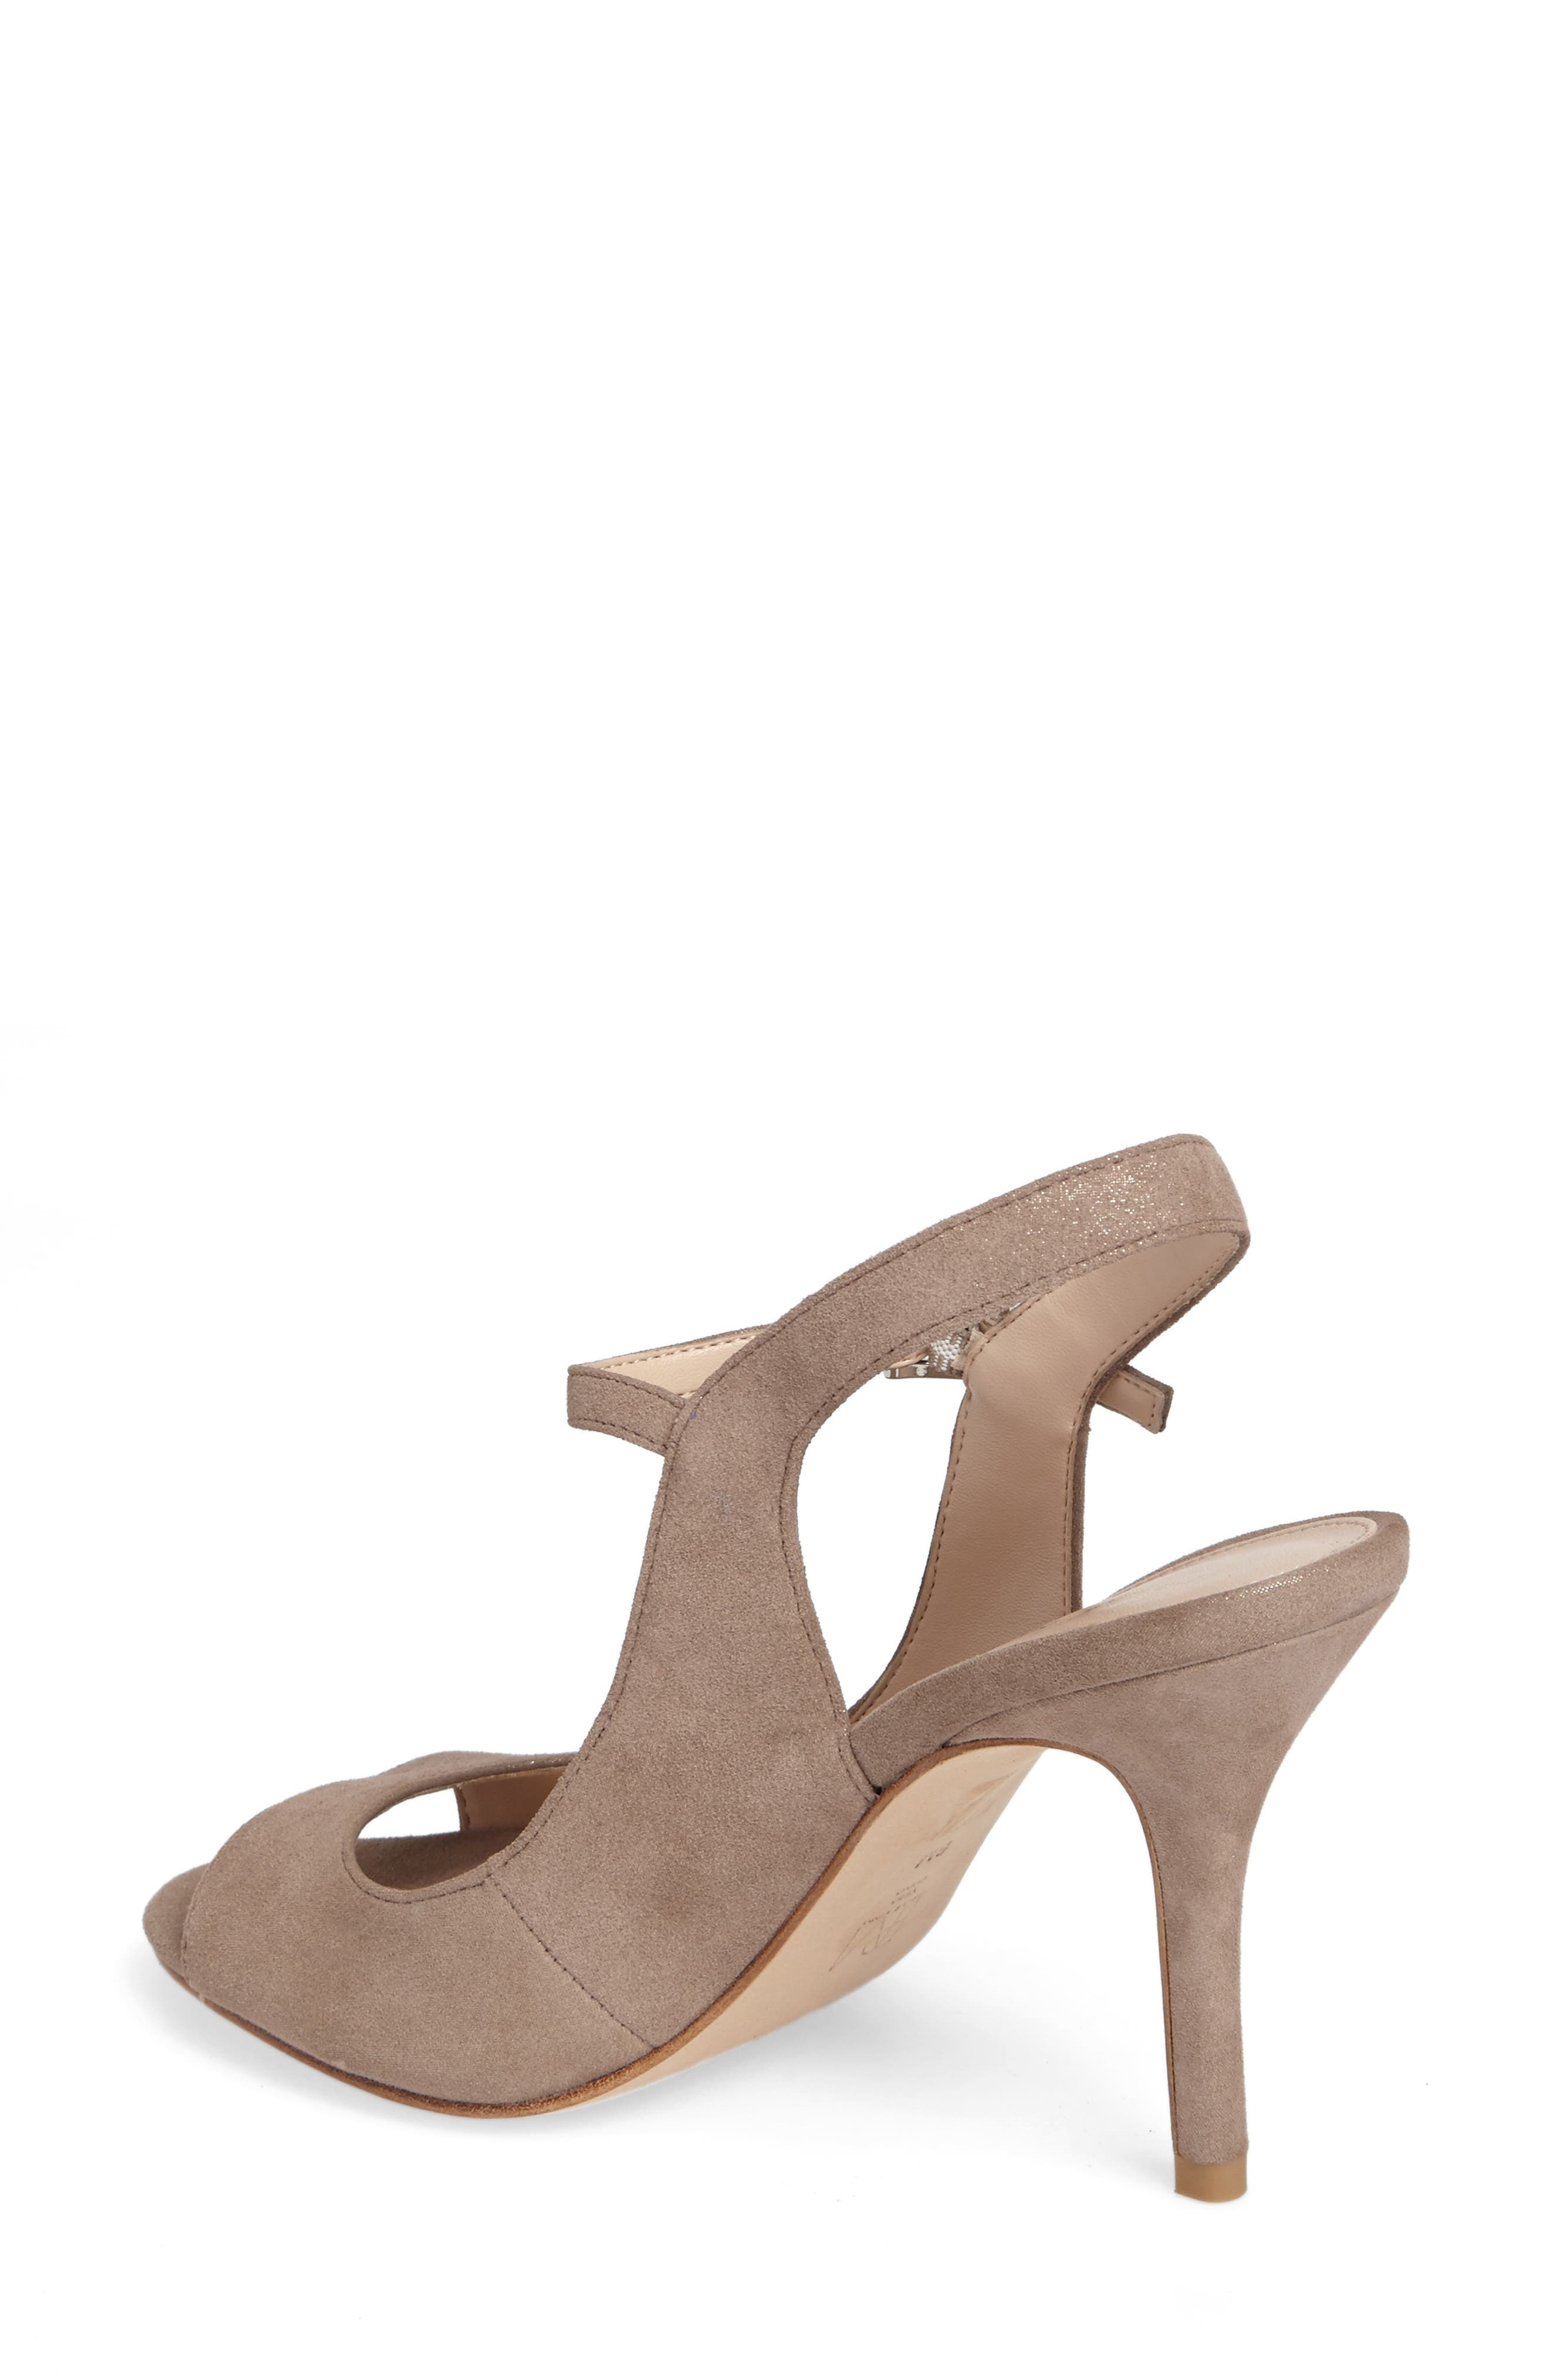 Kinsey Sandal,                             Alternate thumbnail 2, color,                             Taupe Leather